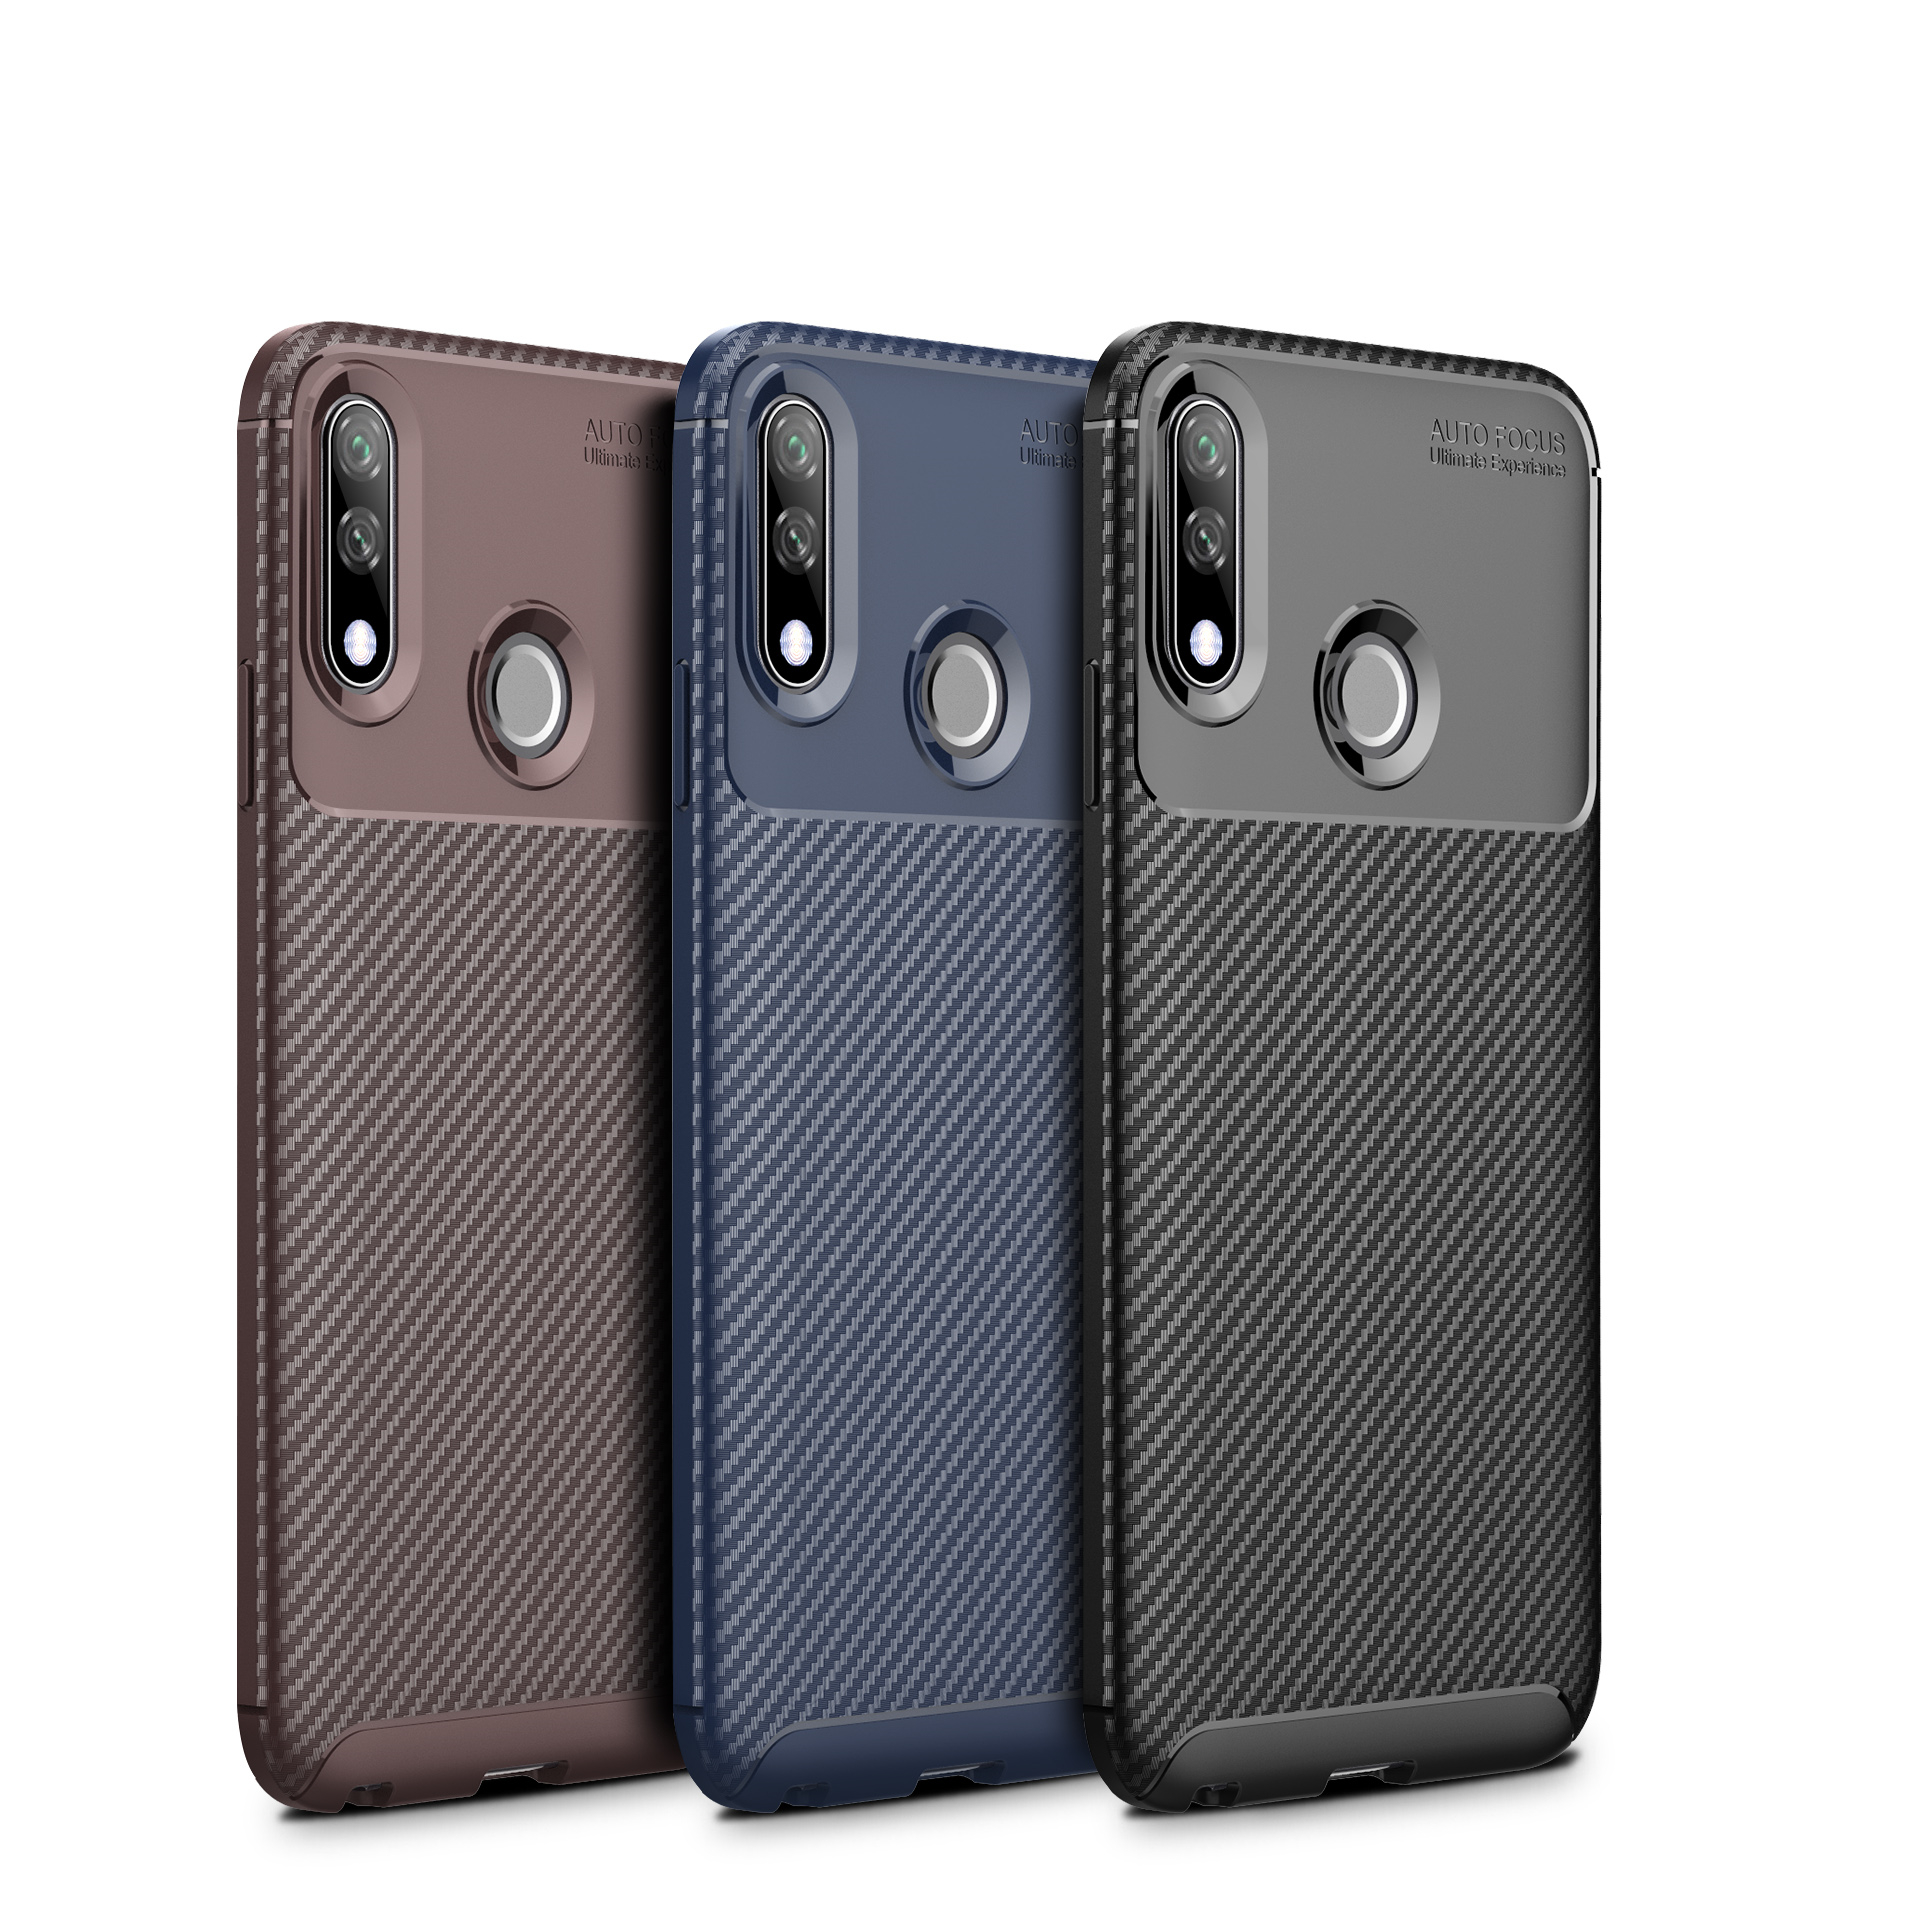 DOYERS Beetle case for LG <strong>W10</strong>,Original Hight Quality cover for Ultrathin Soft TPU Carbon Fiber <strong>Phone</strong> case for <strong>W10</strong>